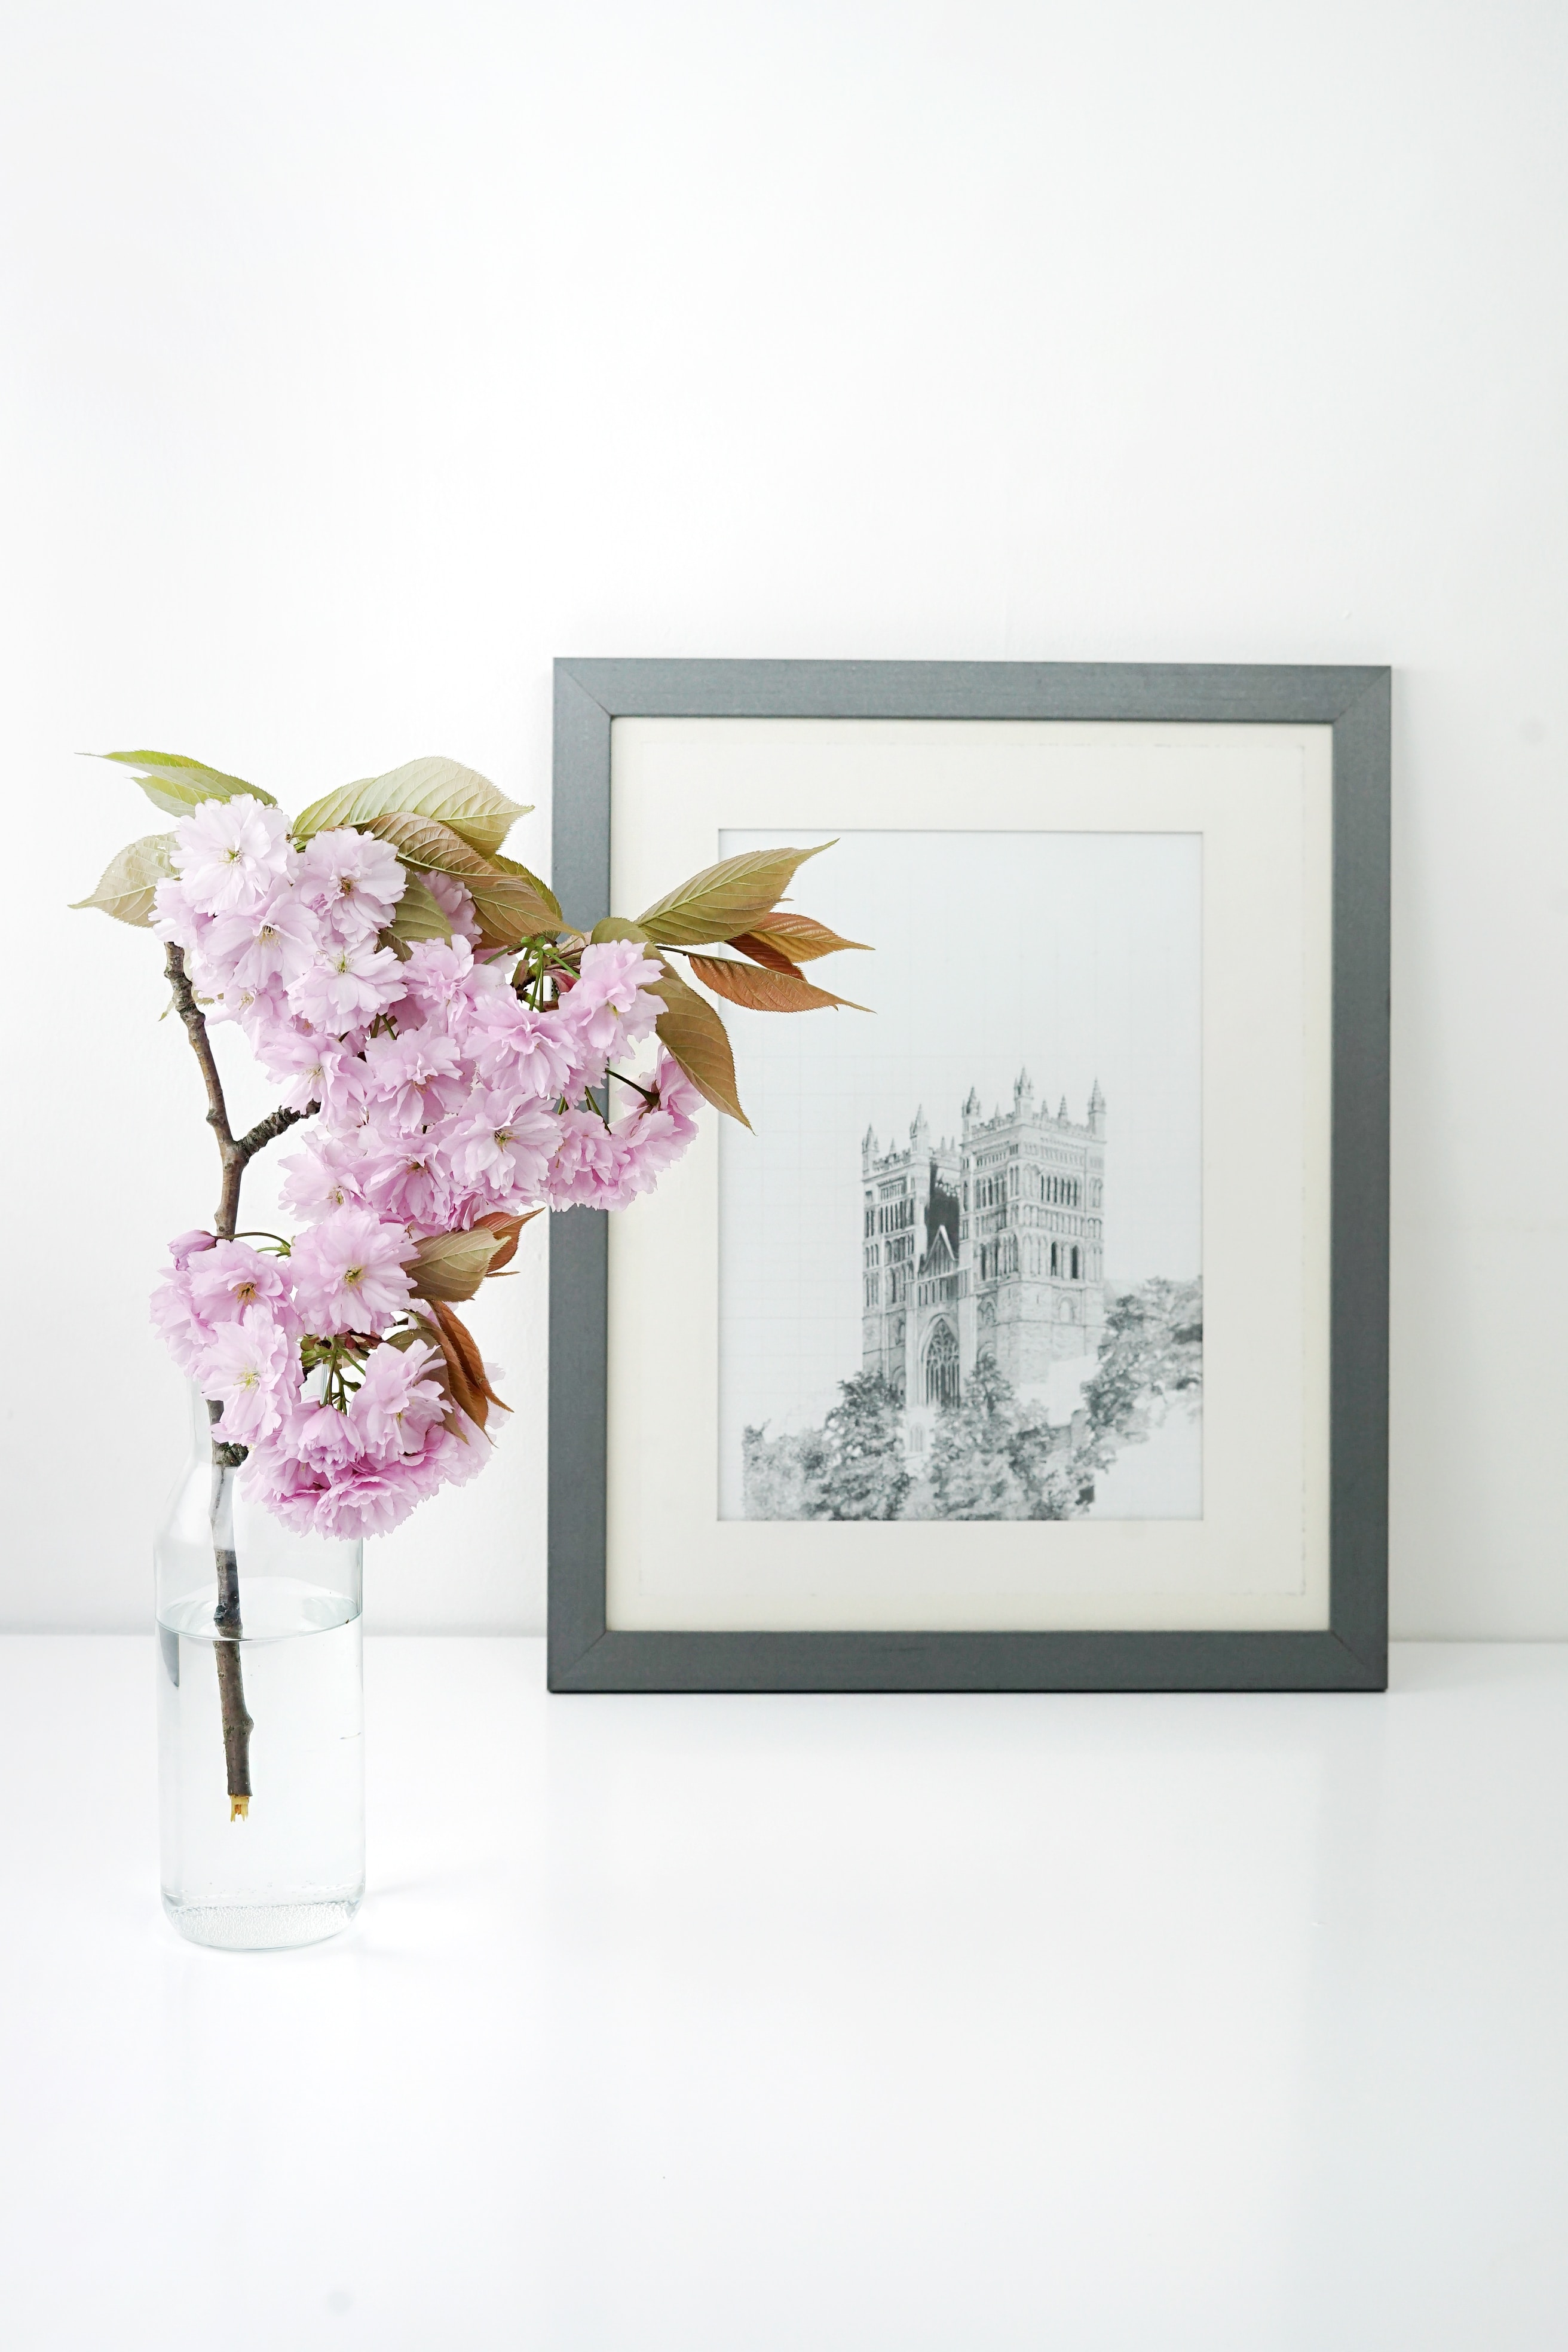 advantages of framed prints image